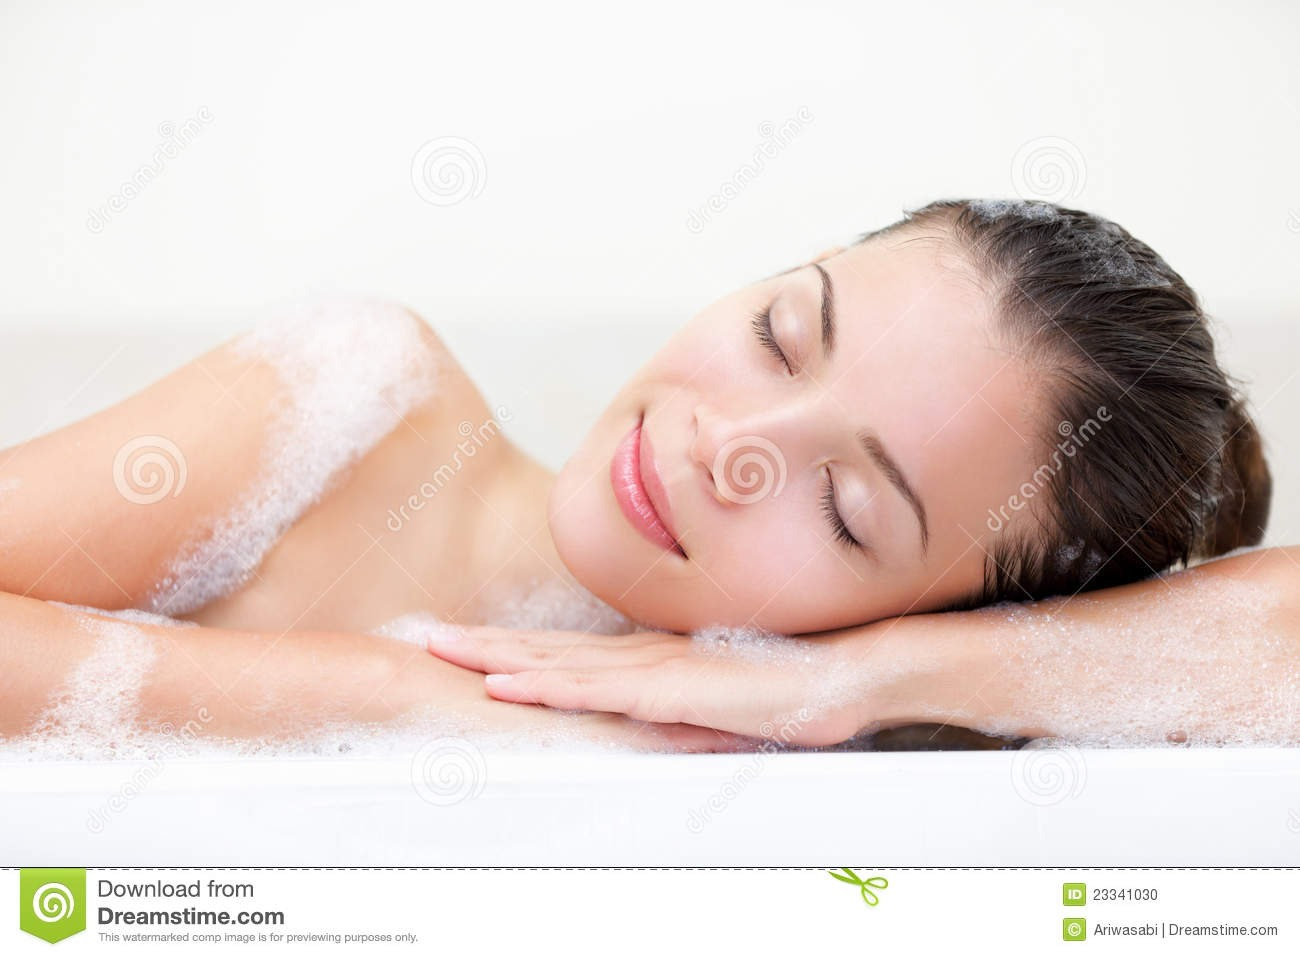 1. Fill bath with warm water 2. Pour 2 cups Epsom salt in bath 3. Add aromatherapy oils or herbs if you wish (lavender, tea tree, eucalyptus, chamomile, etc) 4. Soak for 25-40 minutes 5. Relax